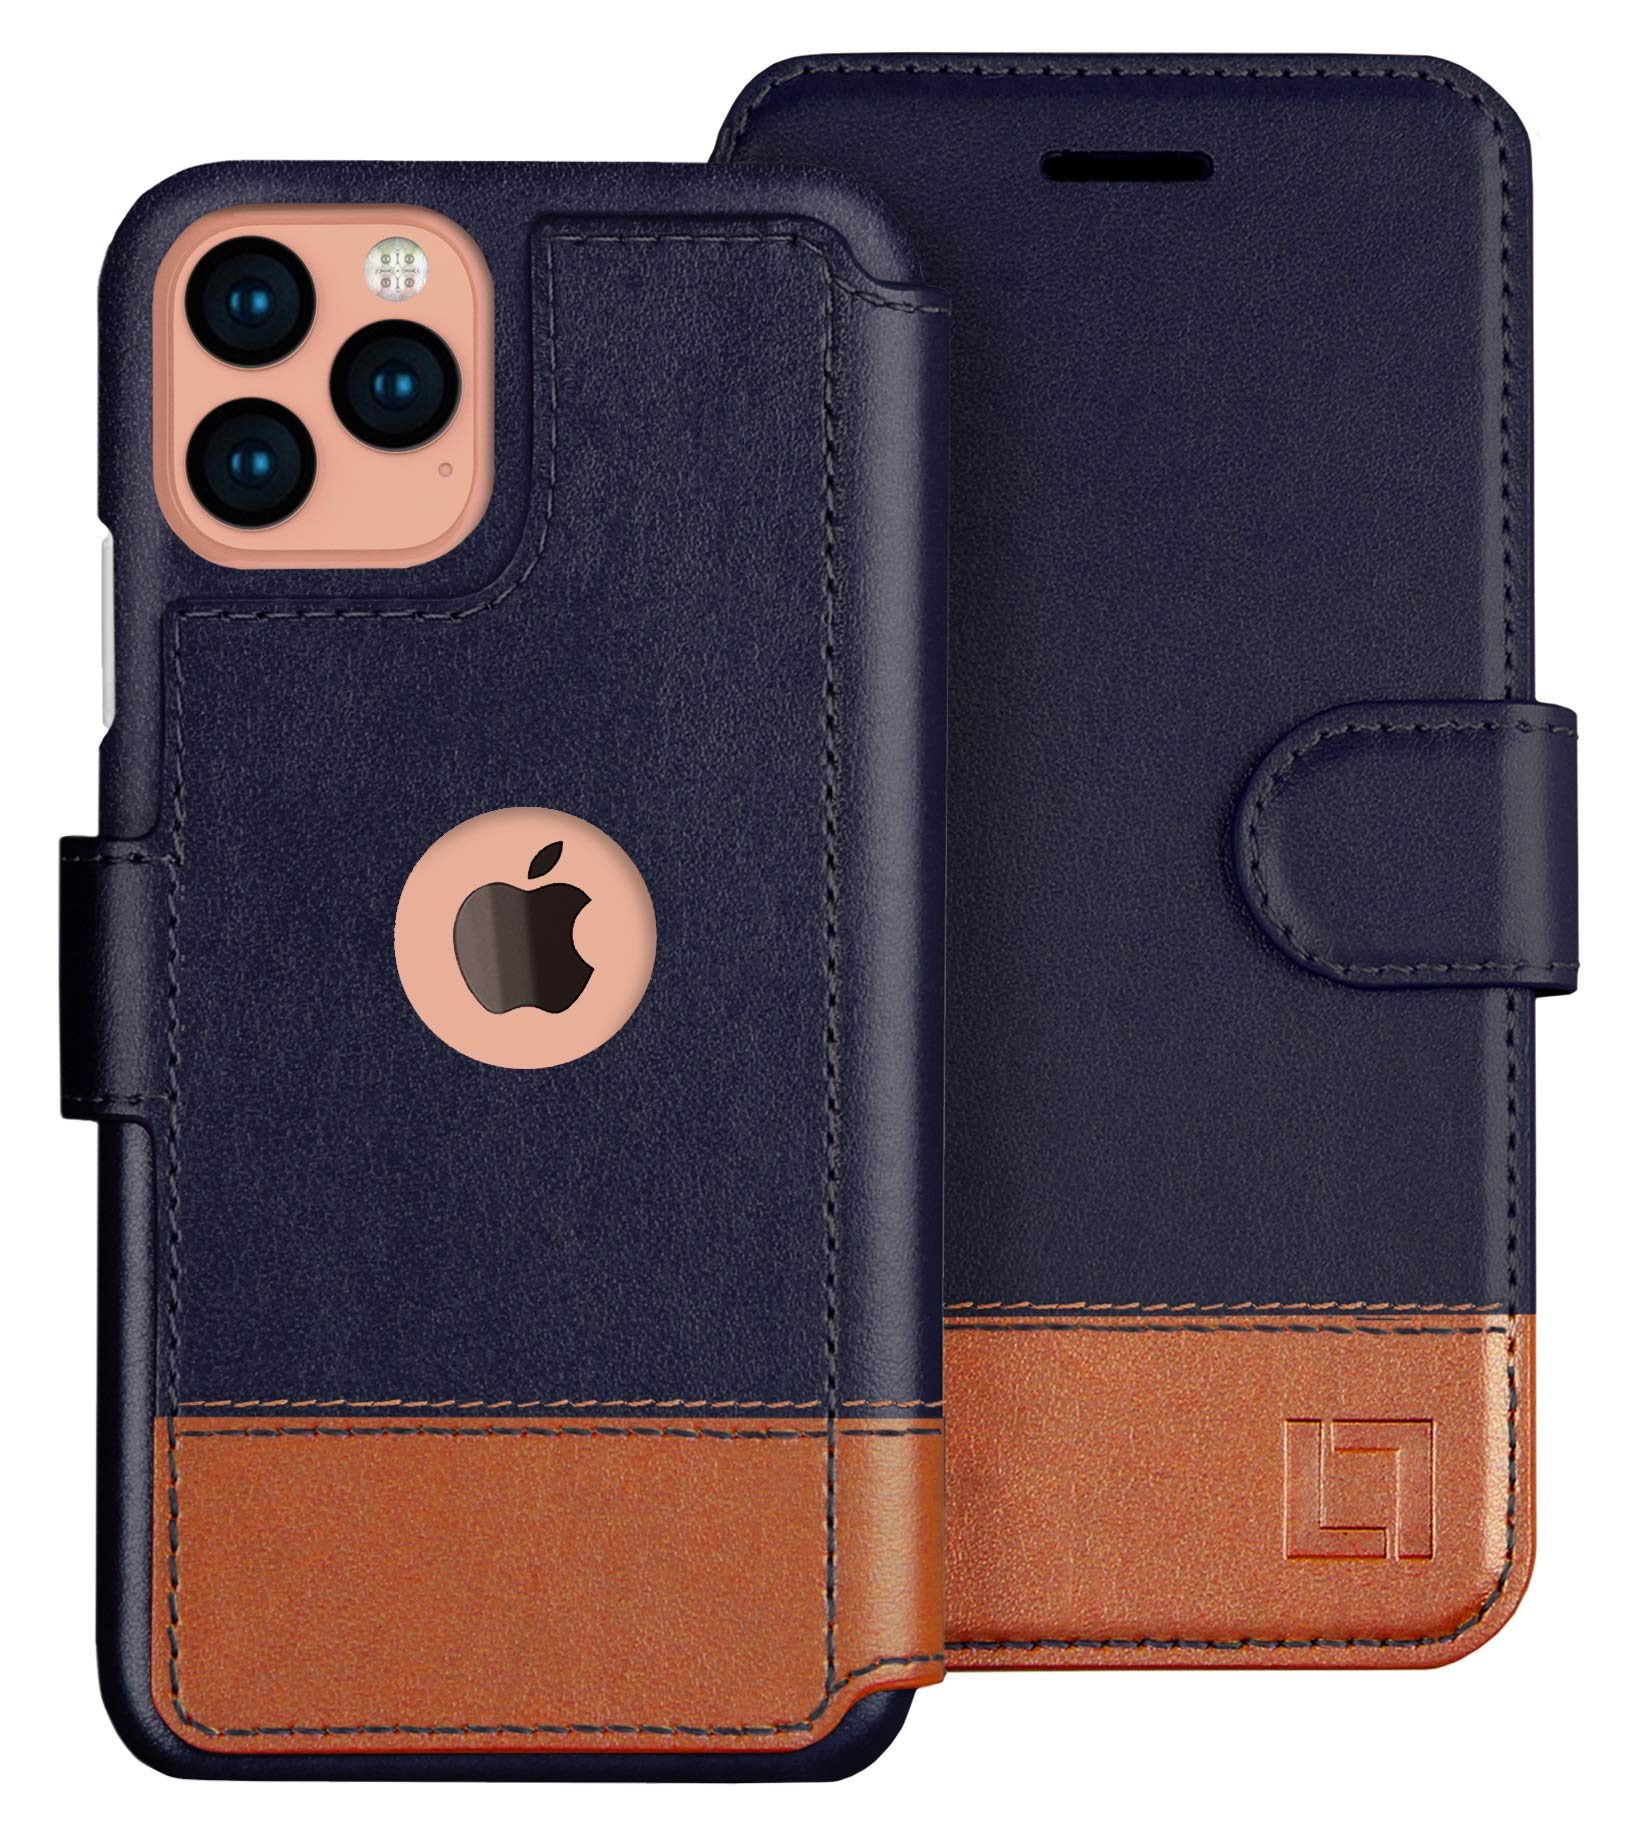 LUPA iPhone 11 Pro Wallet Case -Slim iPhone 11 Pro Flip Case with Credit Card Holder, iPhone 11 Pro Wallet Case for Women & Men, Faux Leather i Phone 11 Pro Purse Cases, Desert Sky